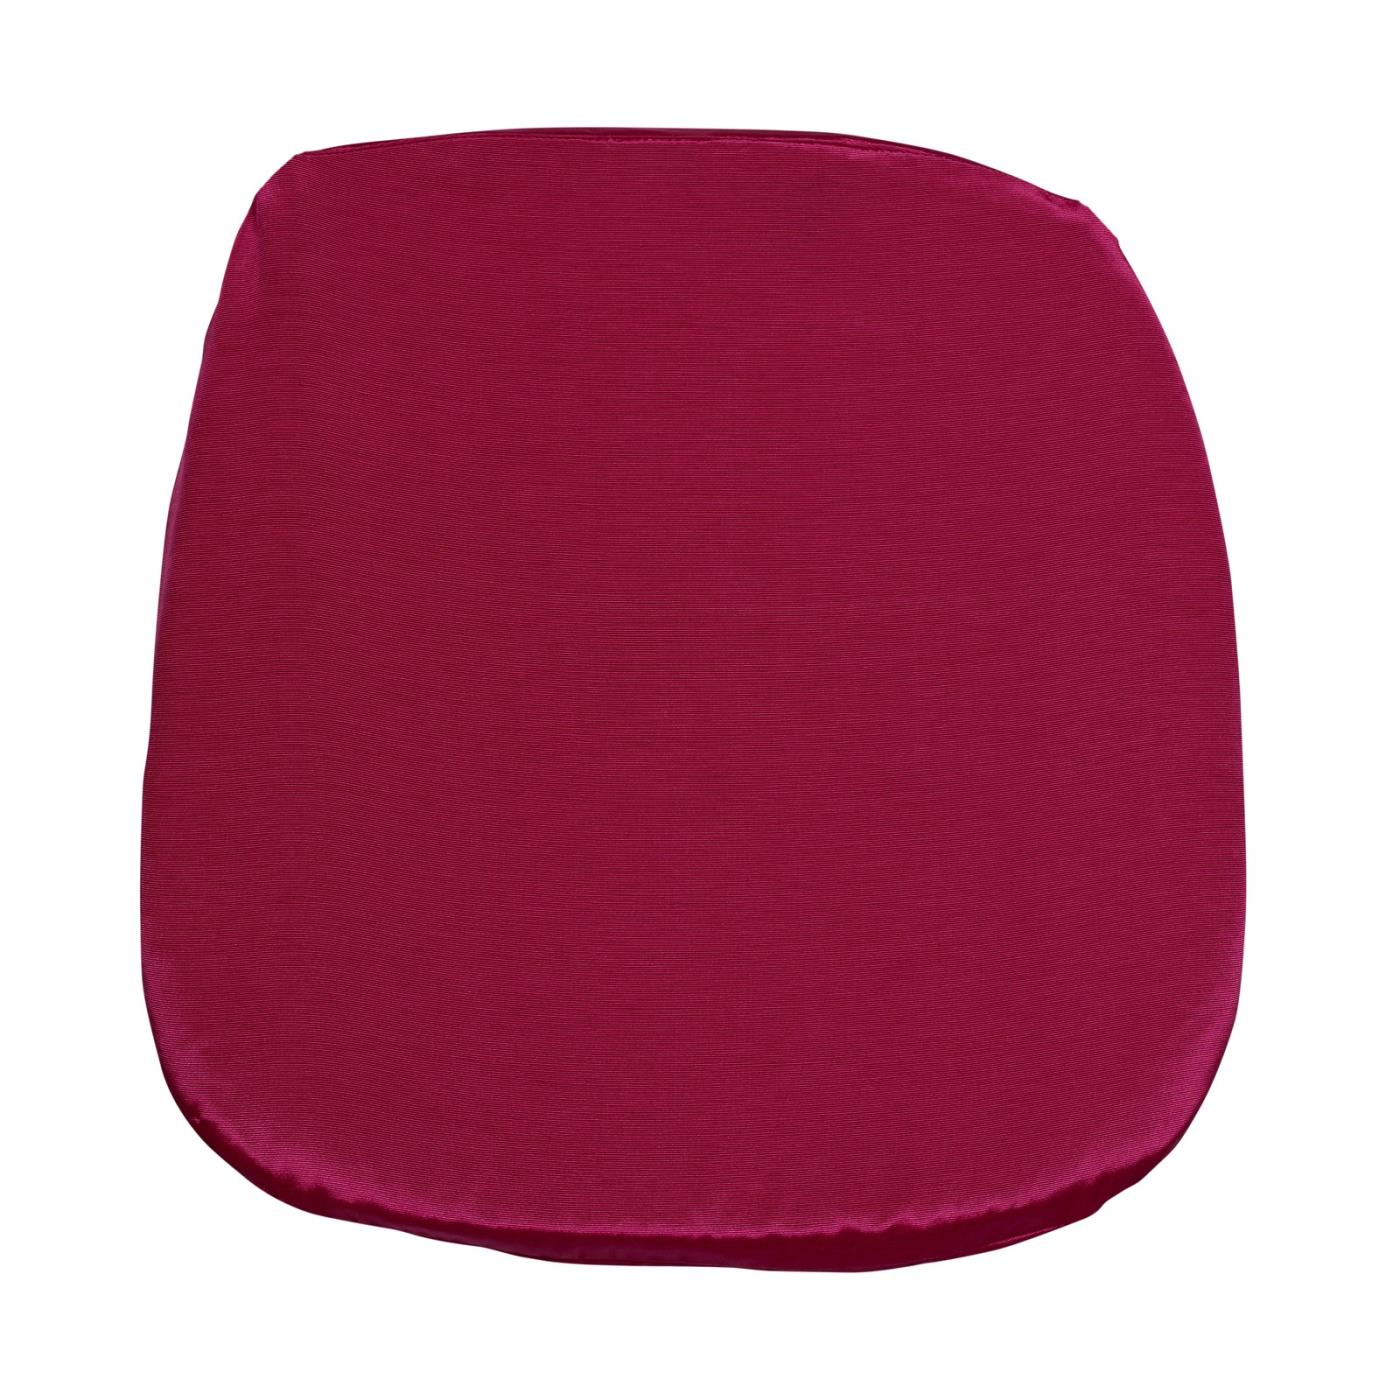 Bengaline Seat Cushion - Hot Pink